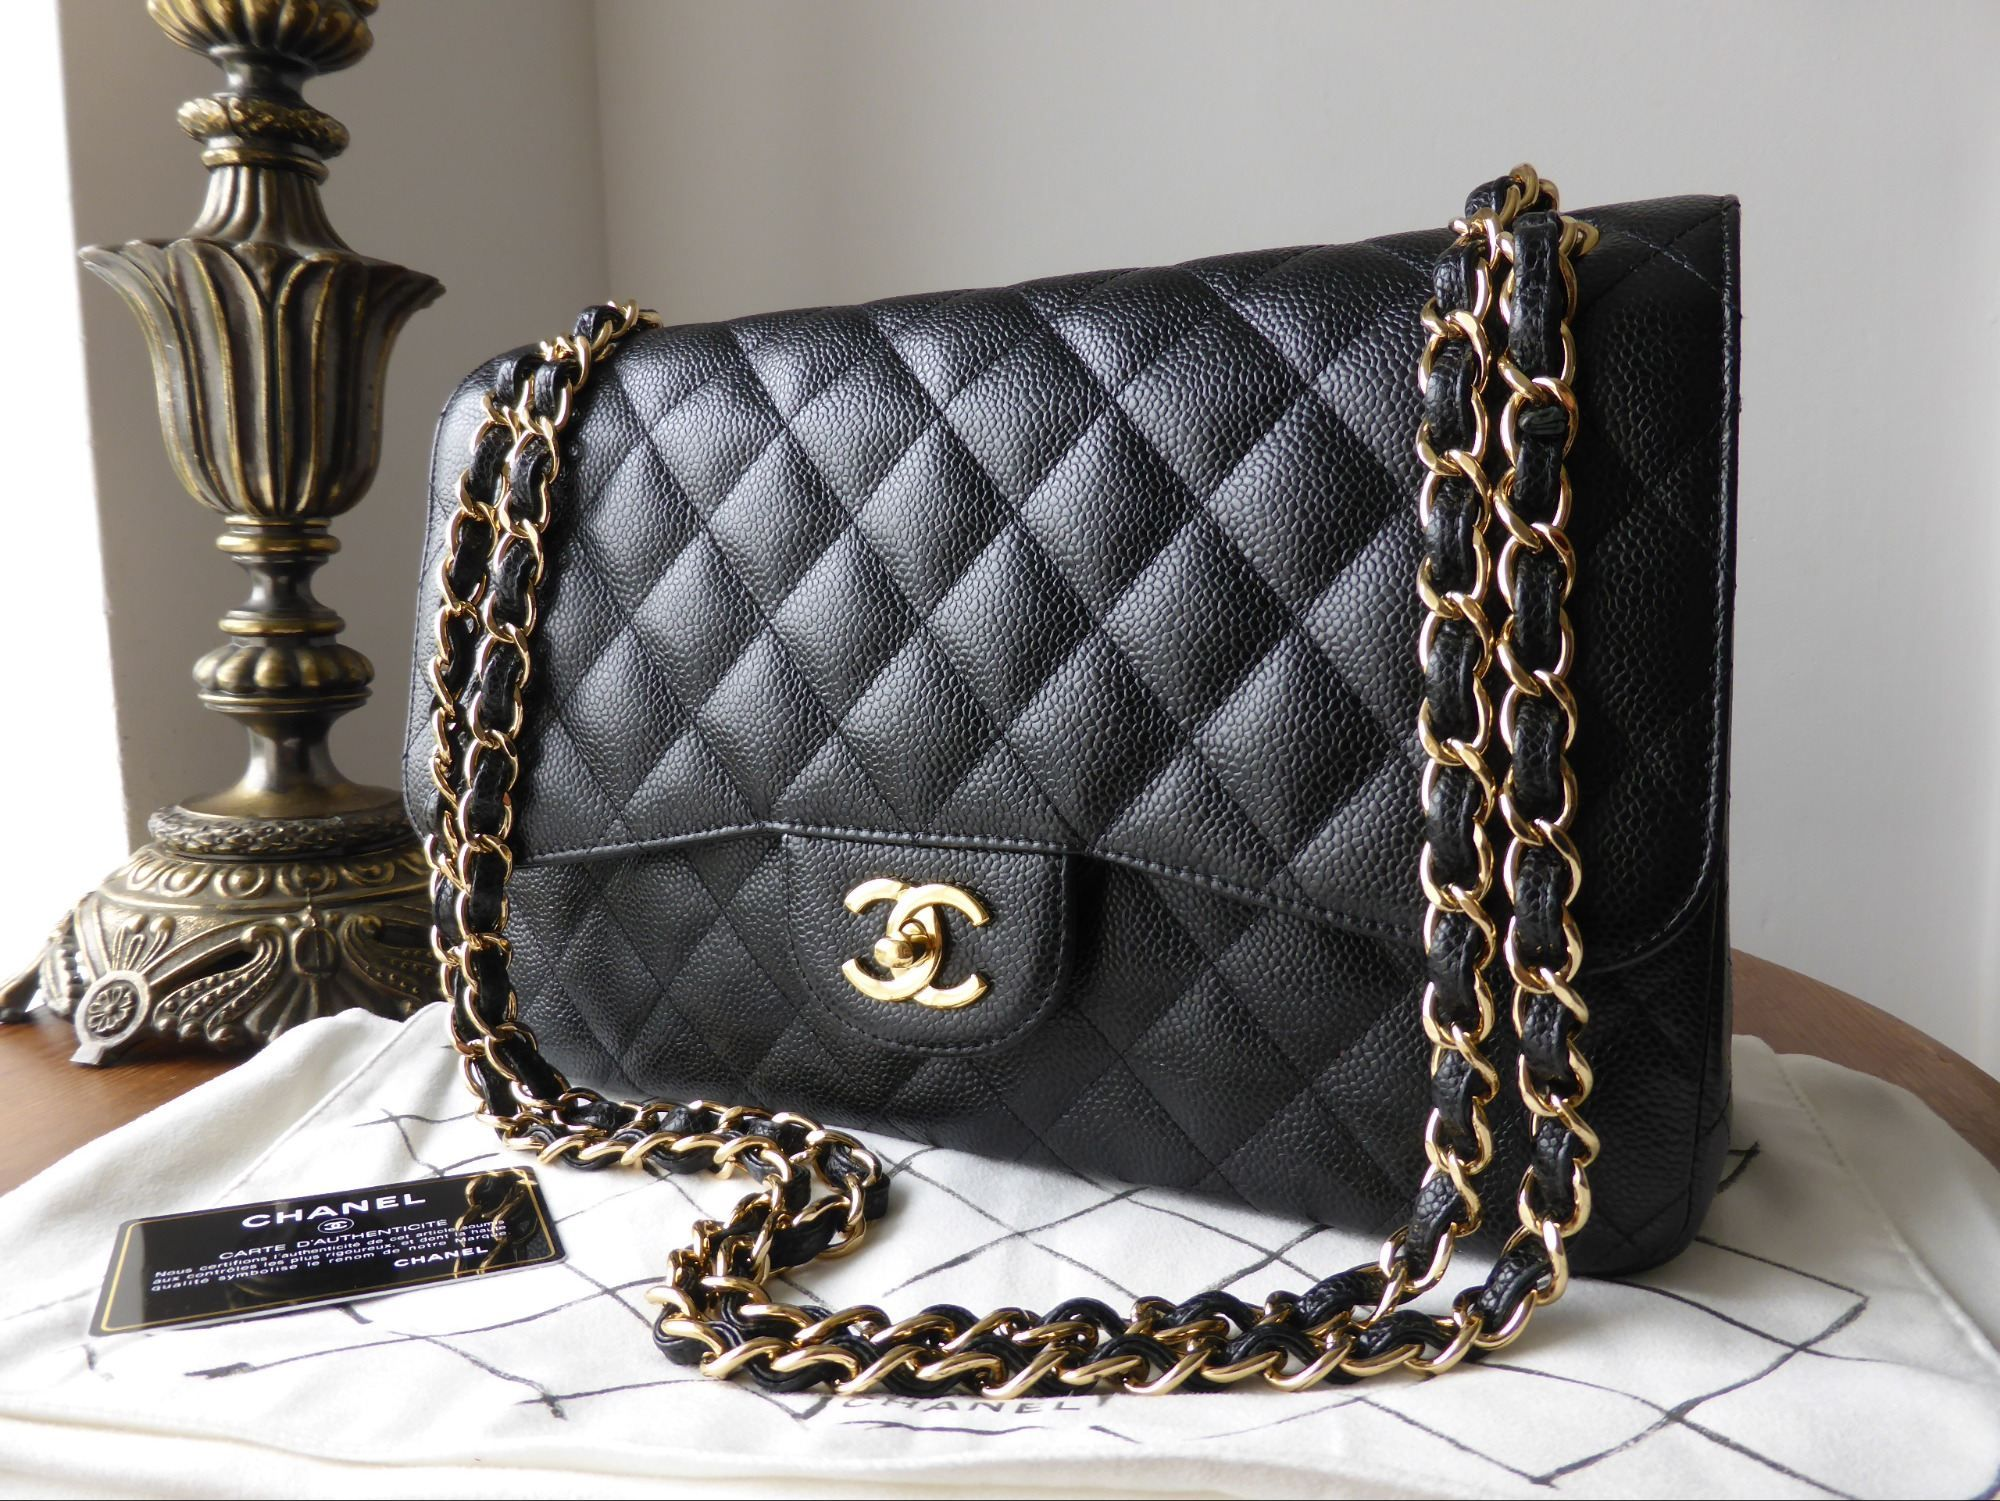 52472dea7be3 Image result for classic black quilted chanel bag with chain strap ...